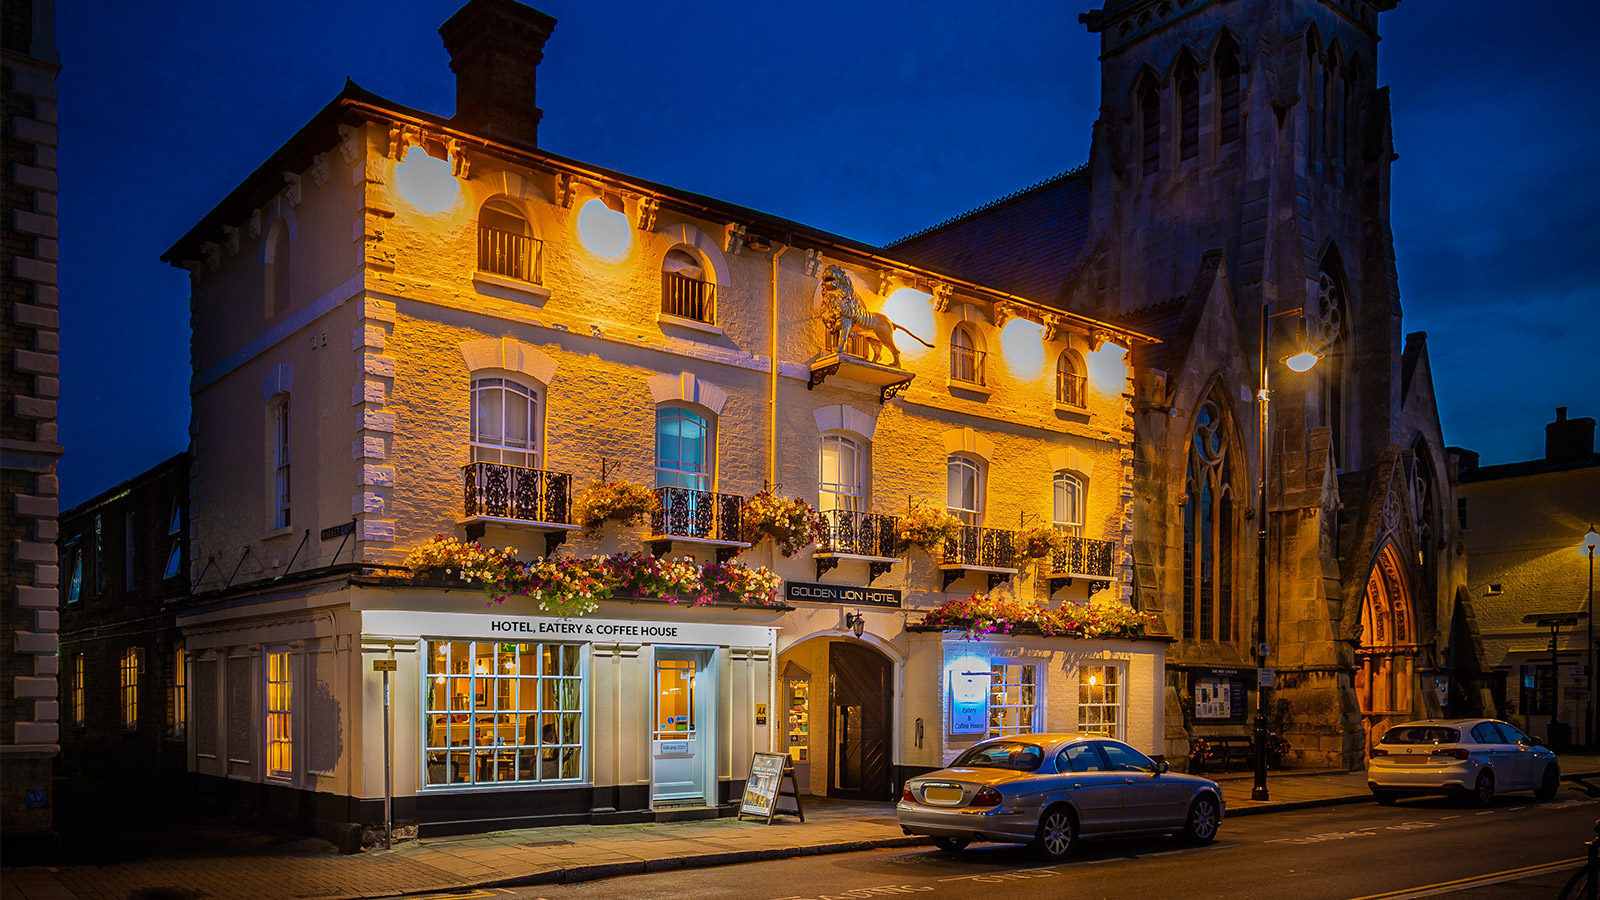 The Golden Lion Hotel Eatery And Coffee House St Ives